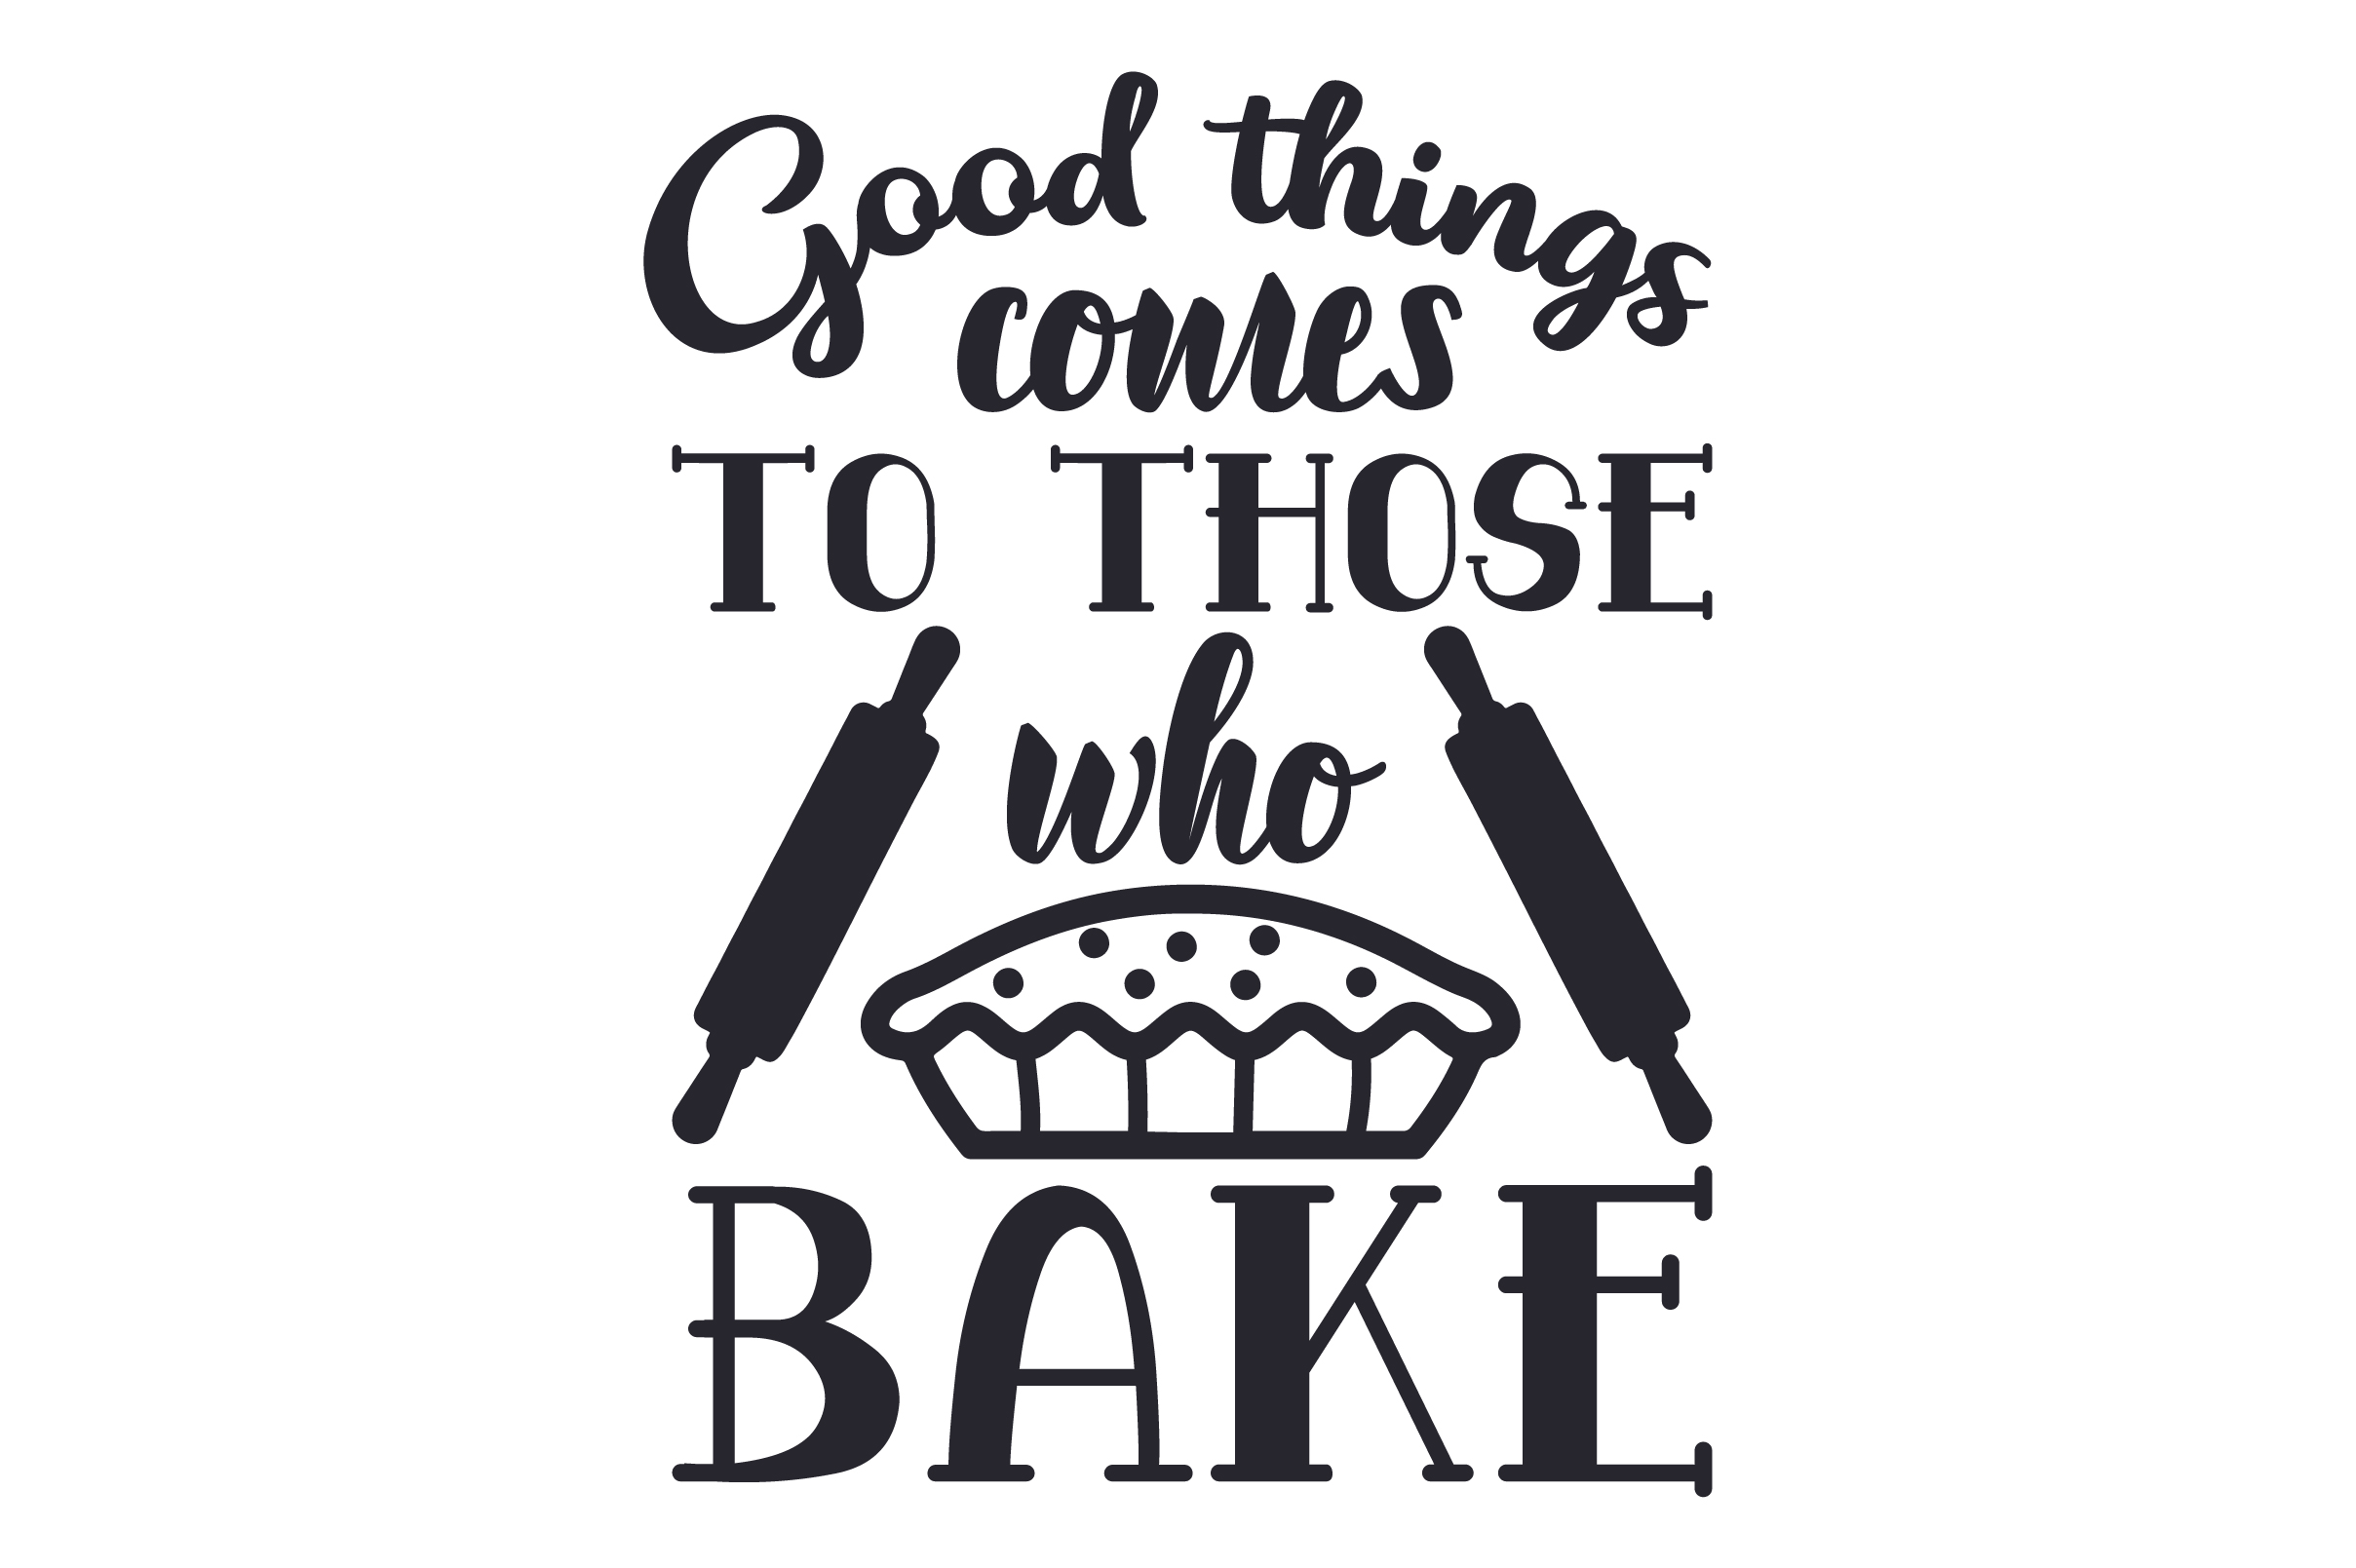 Download Free Good Things Comes To Those Who Bake Svg Cut File By Creative for Cricut Explore, Silhouette and other cutting machines.